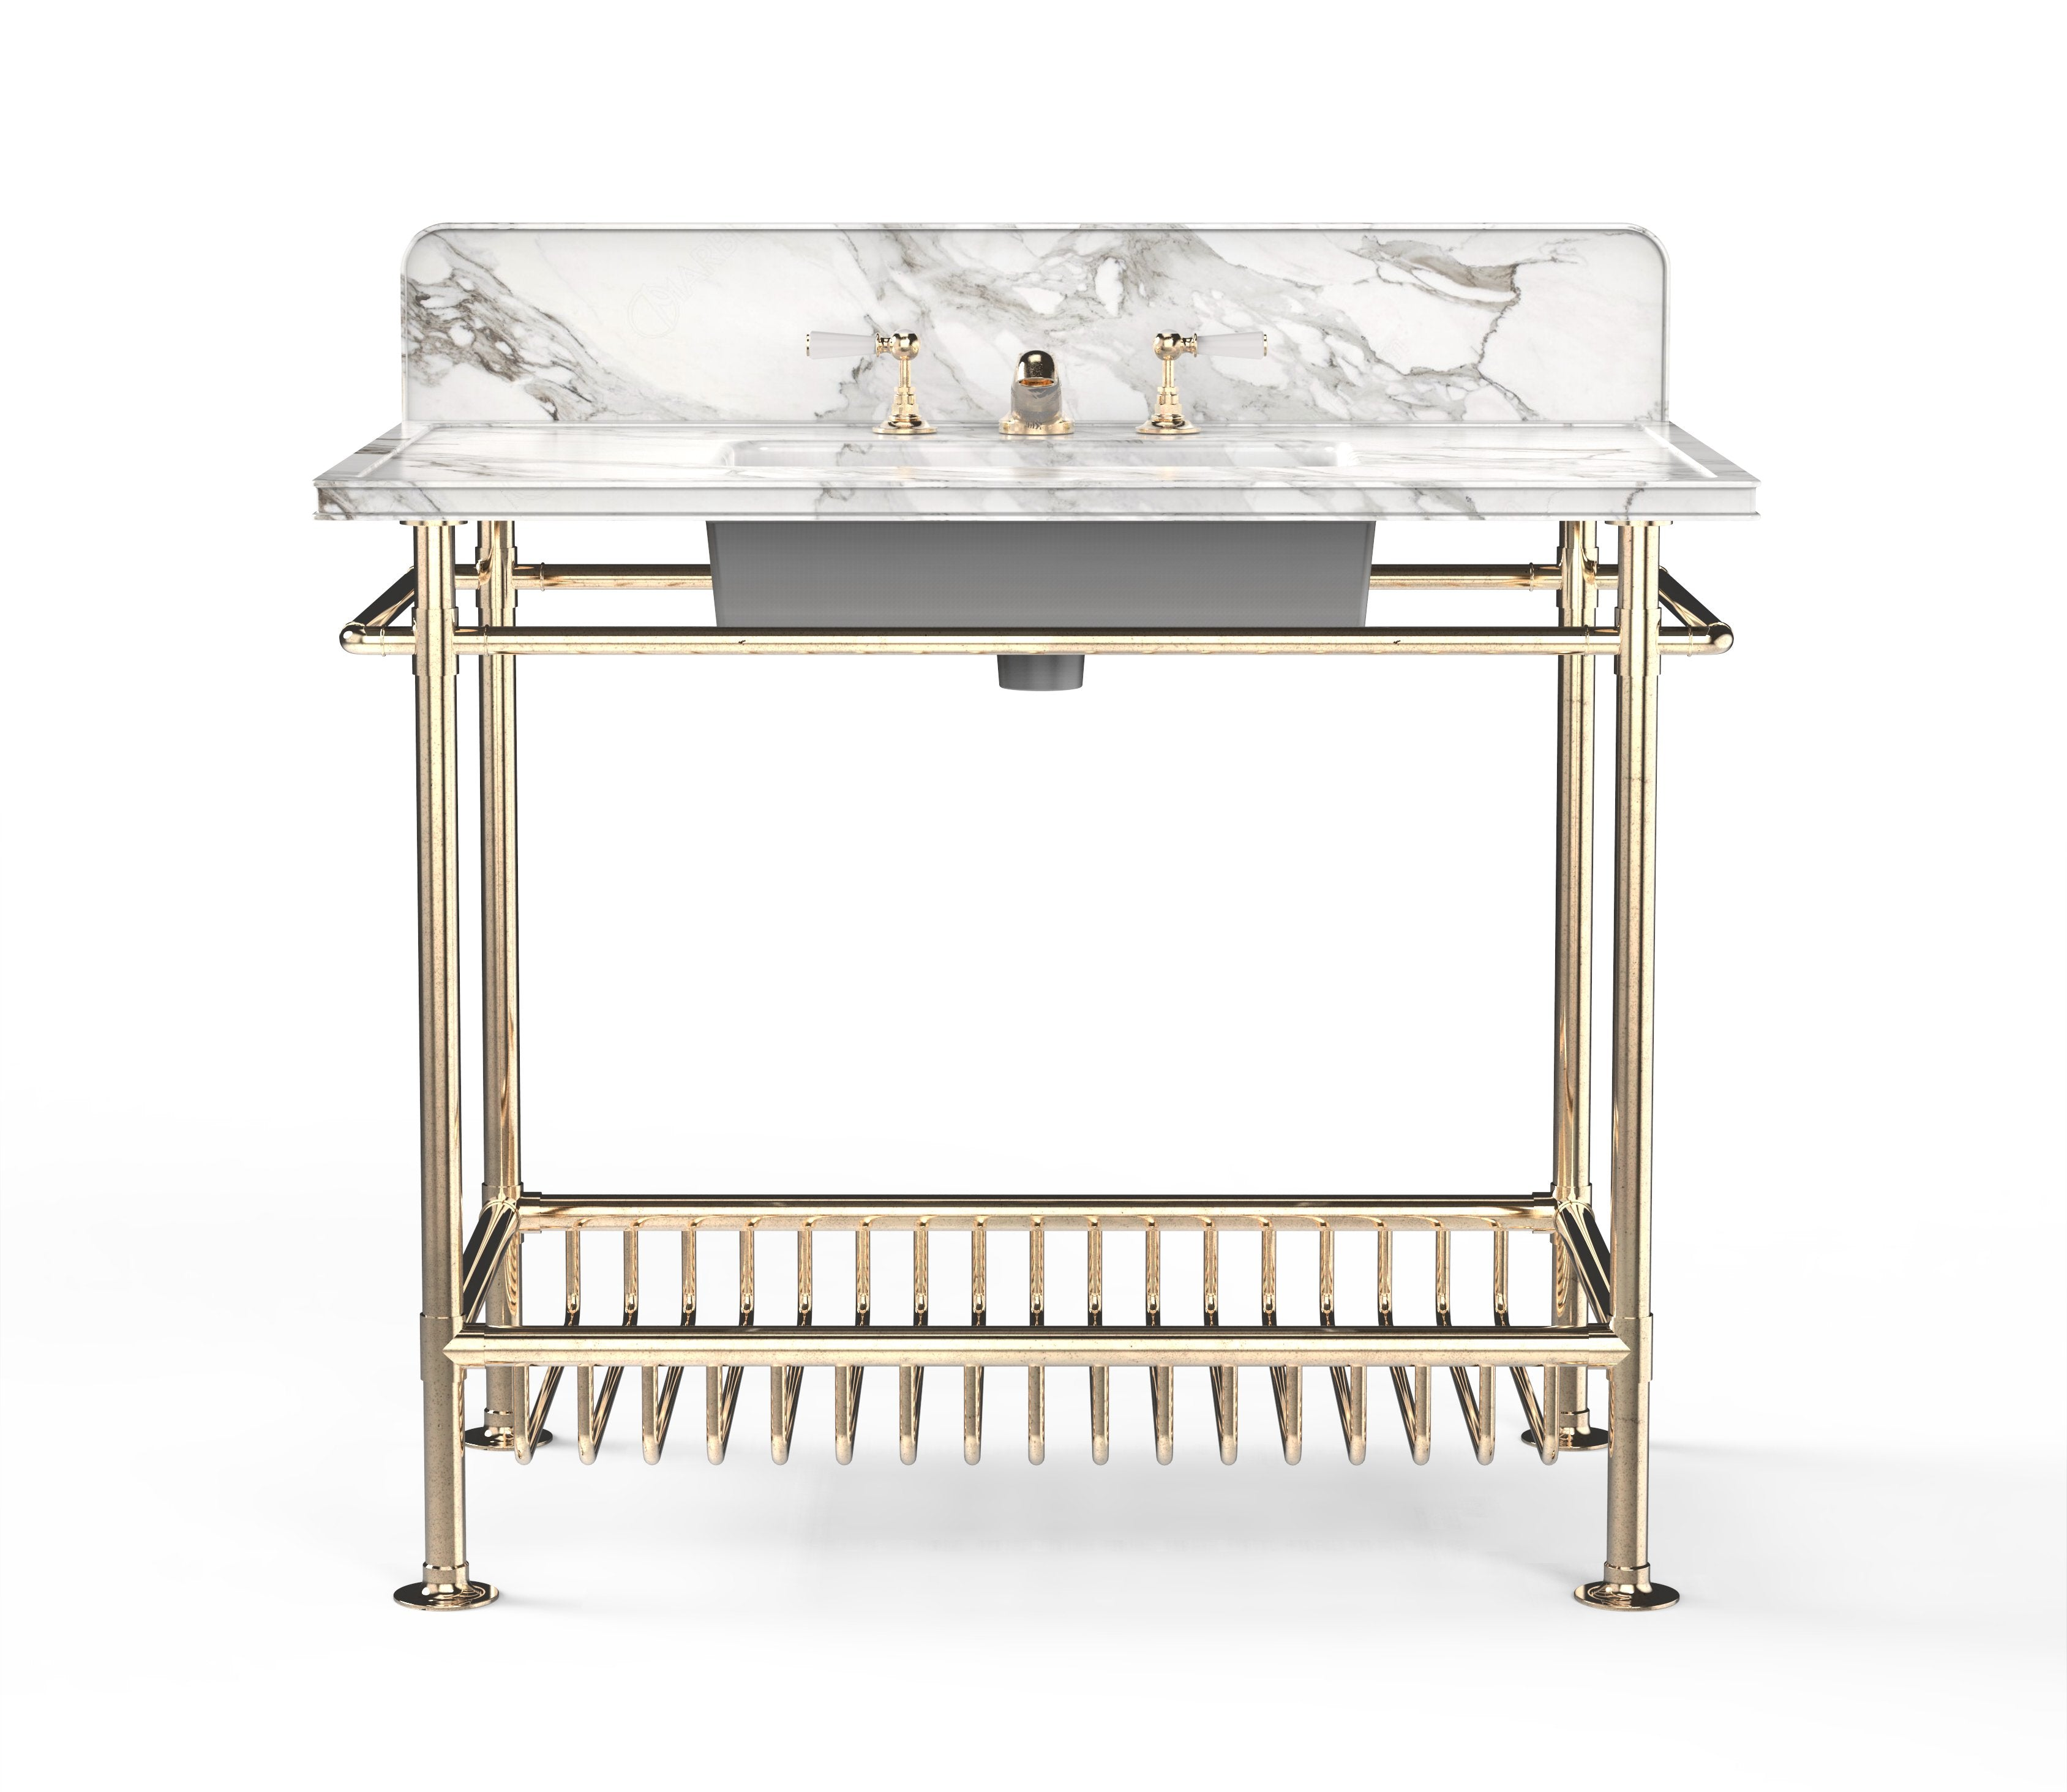 Moderna Washstand with White Marble Product Image 2